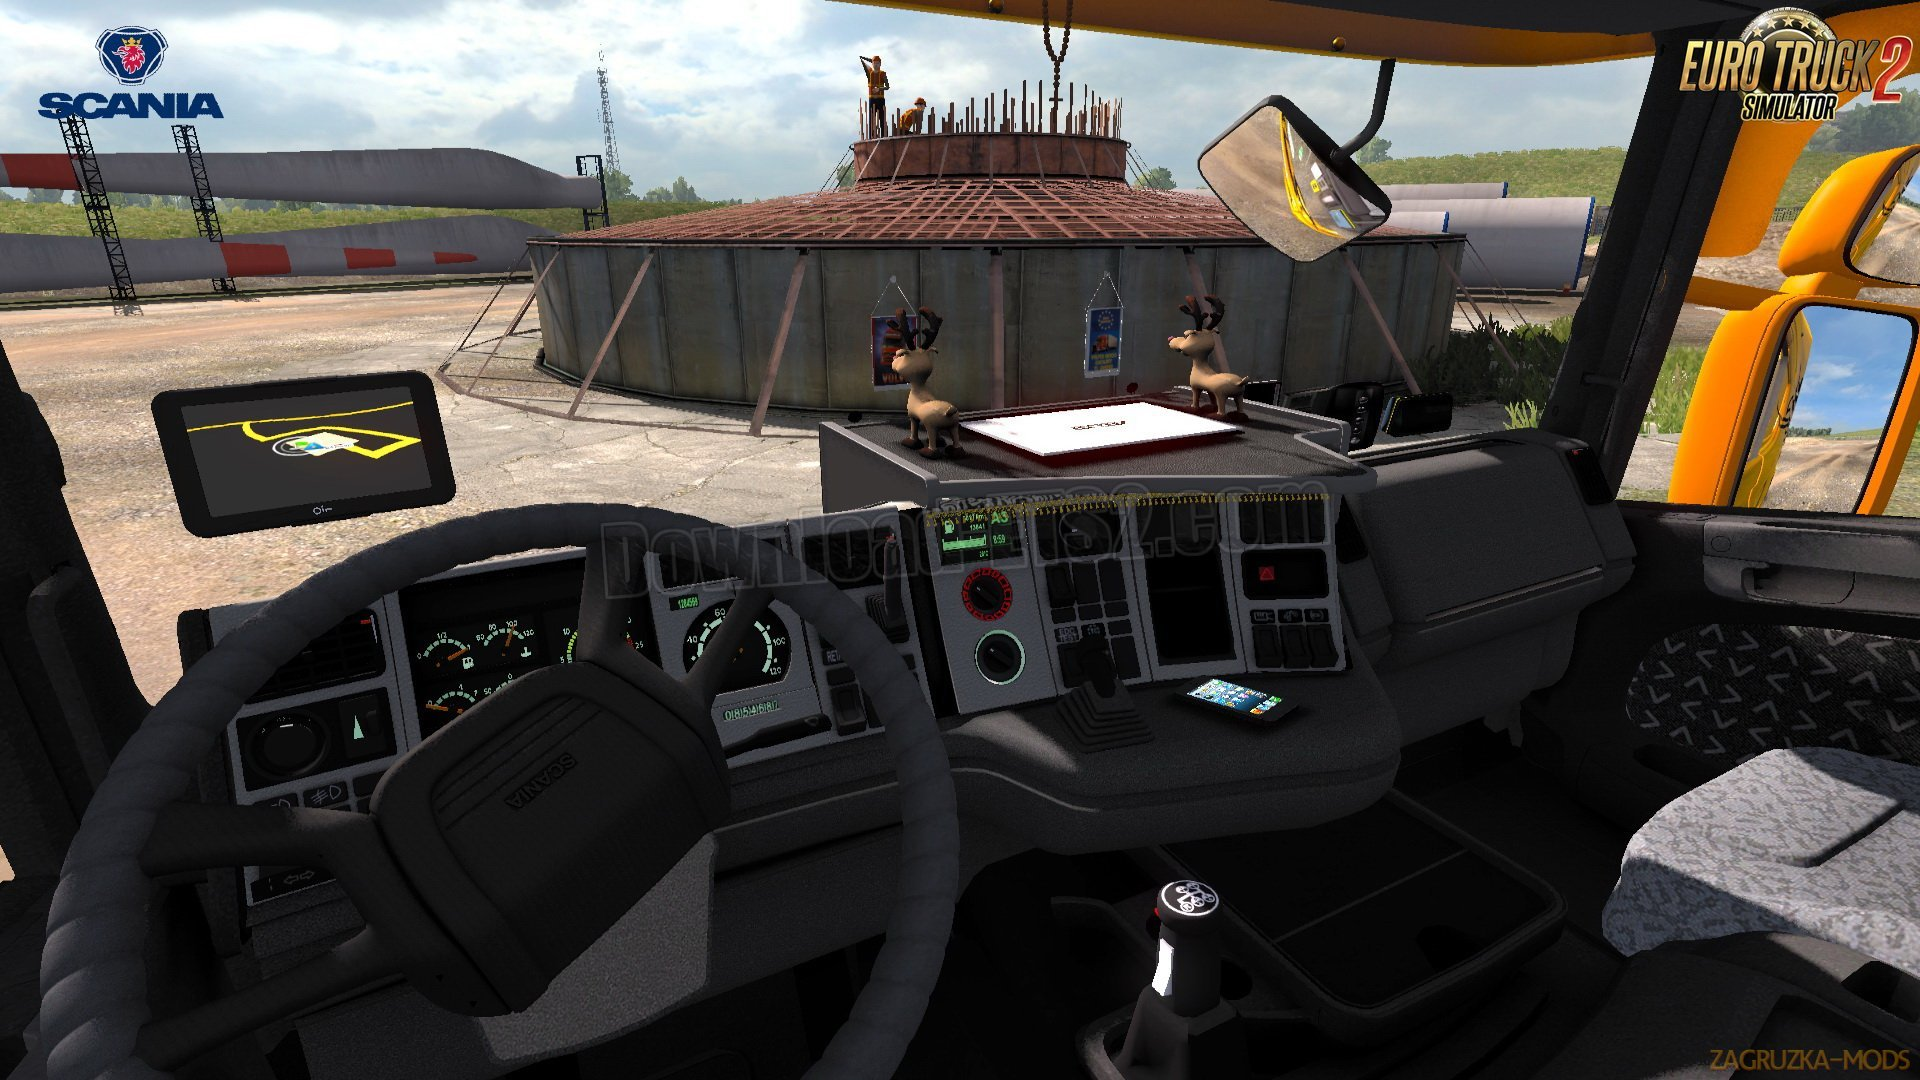 Scania 4 Series + Interior v1.0 by Kirill Mladshev (1.31.x) for ETS 2